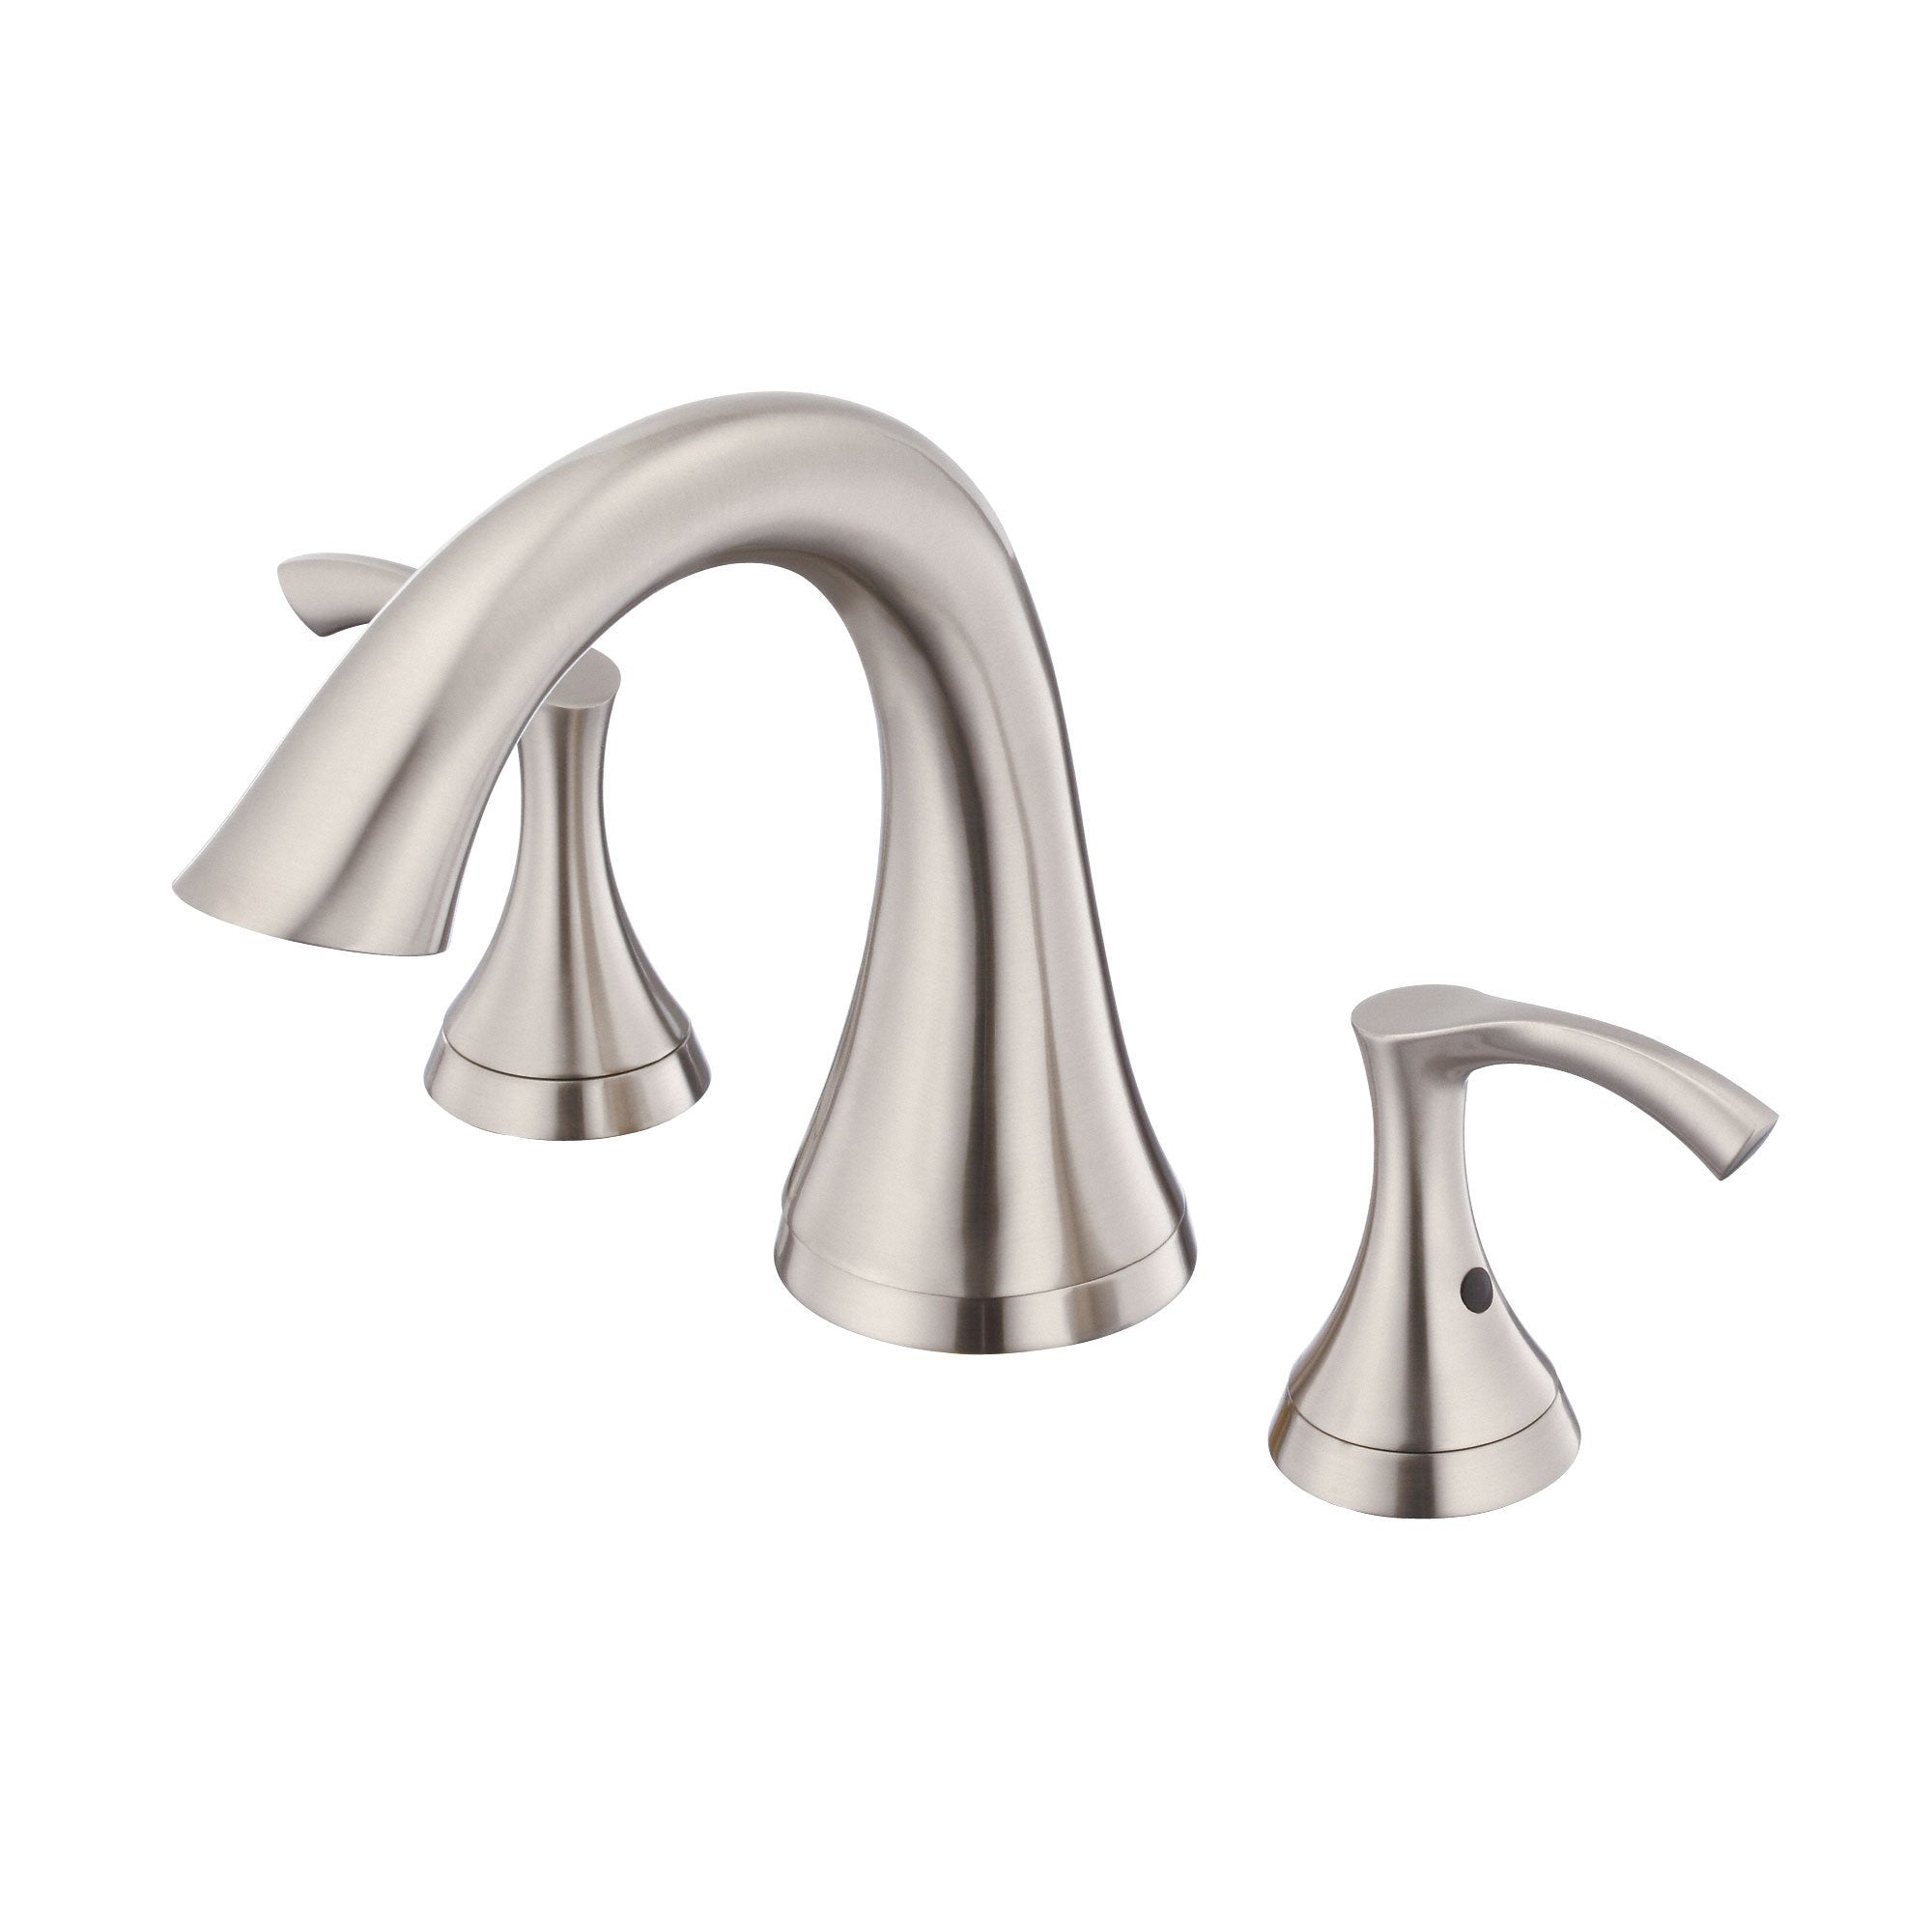 Danze Antioch Brushed Nickel High Volume Roman tub Filler Faucet INCLUDES Rough-in Valve